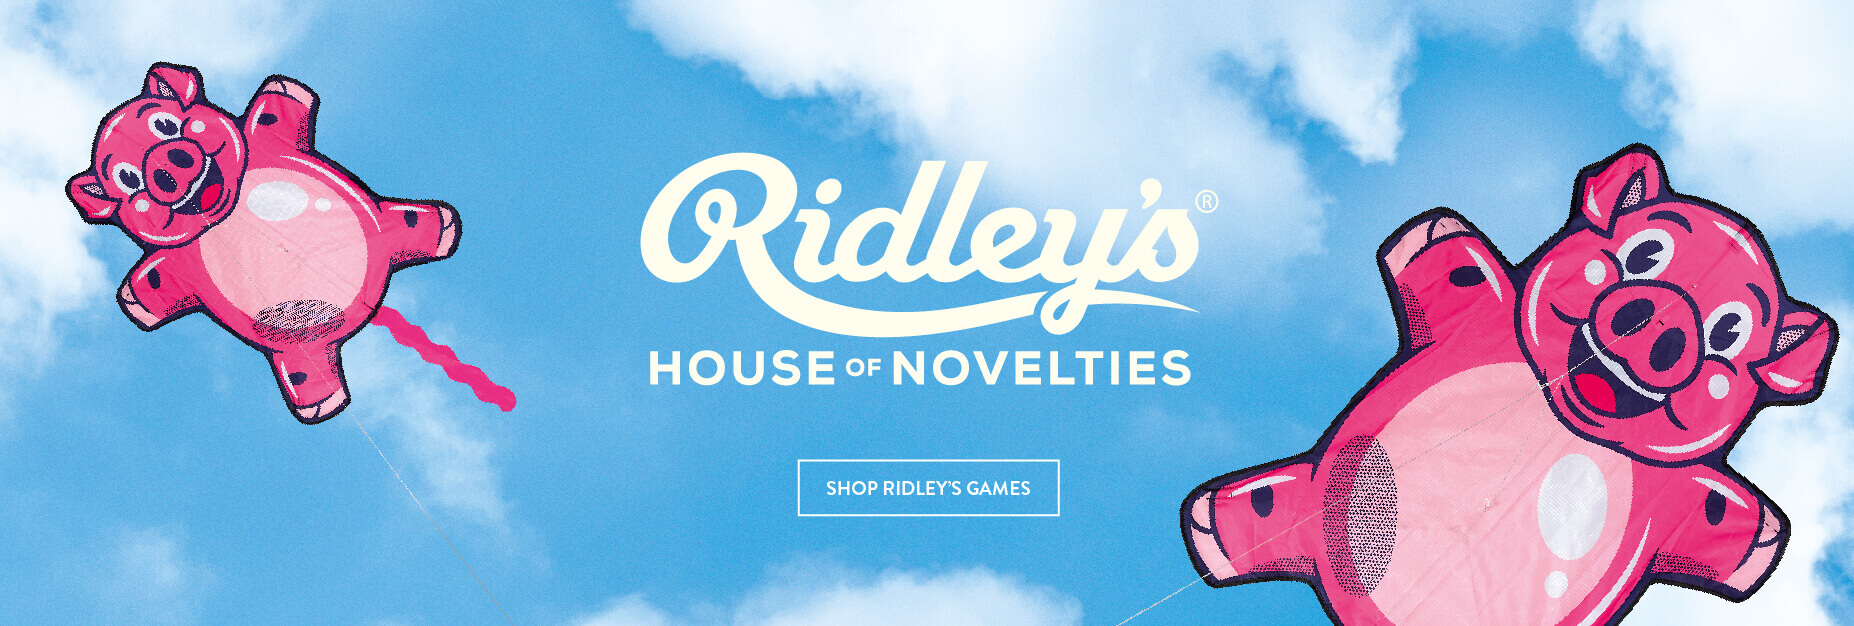 Ridleys Games Homepage Carousel Banner Compressed